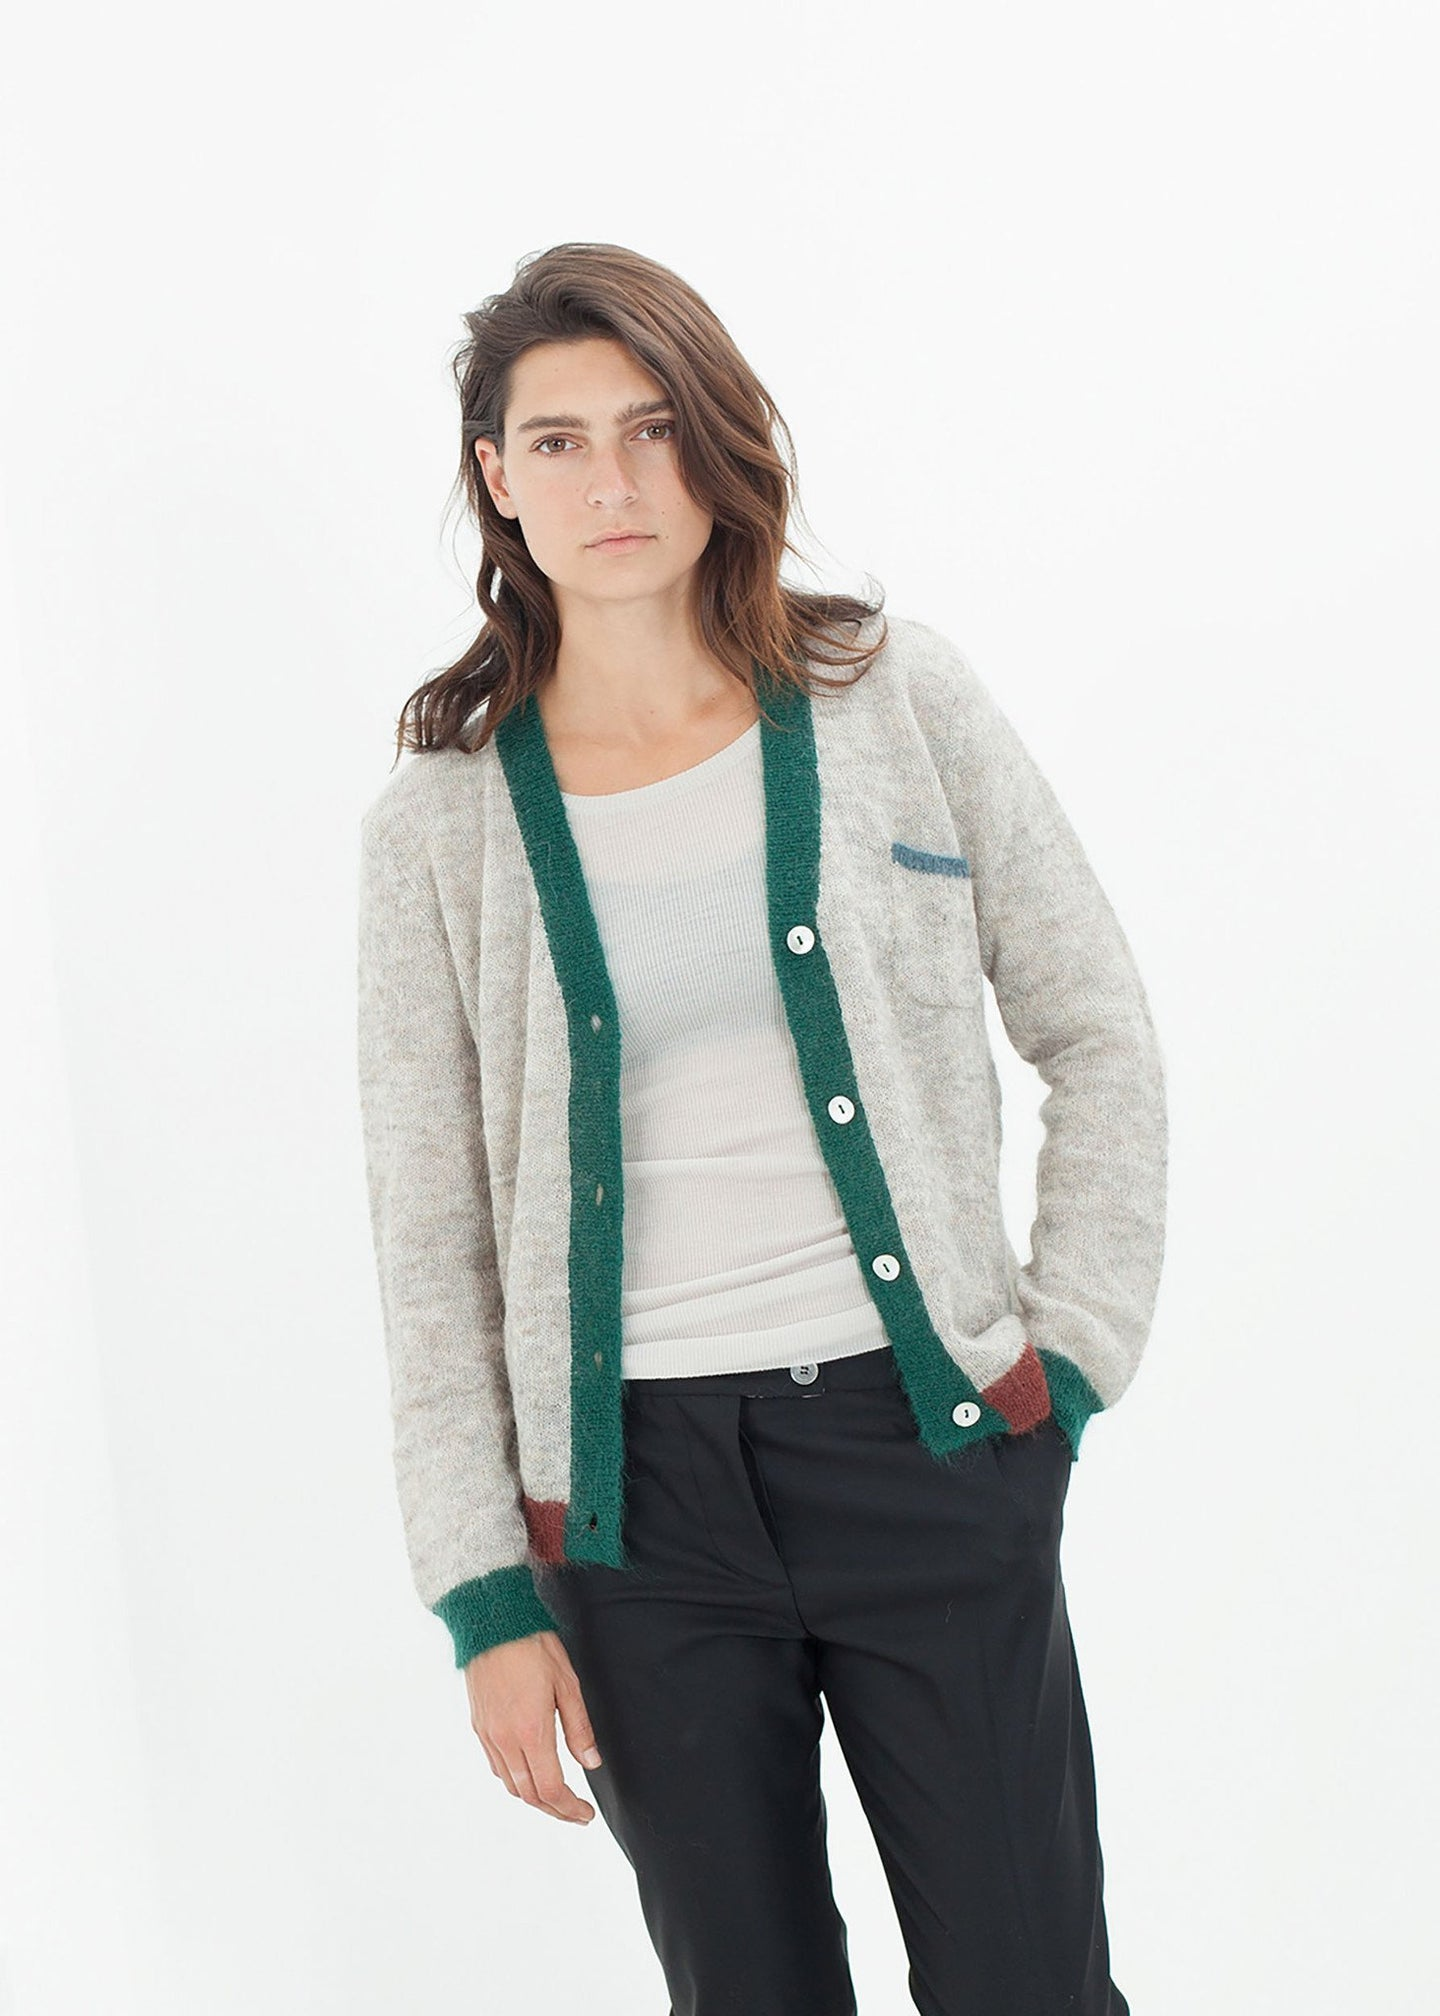 Deskle Cardigan in Heather